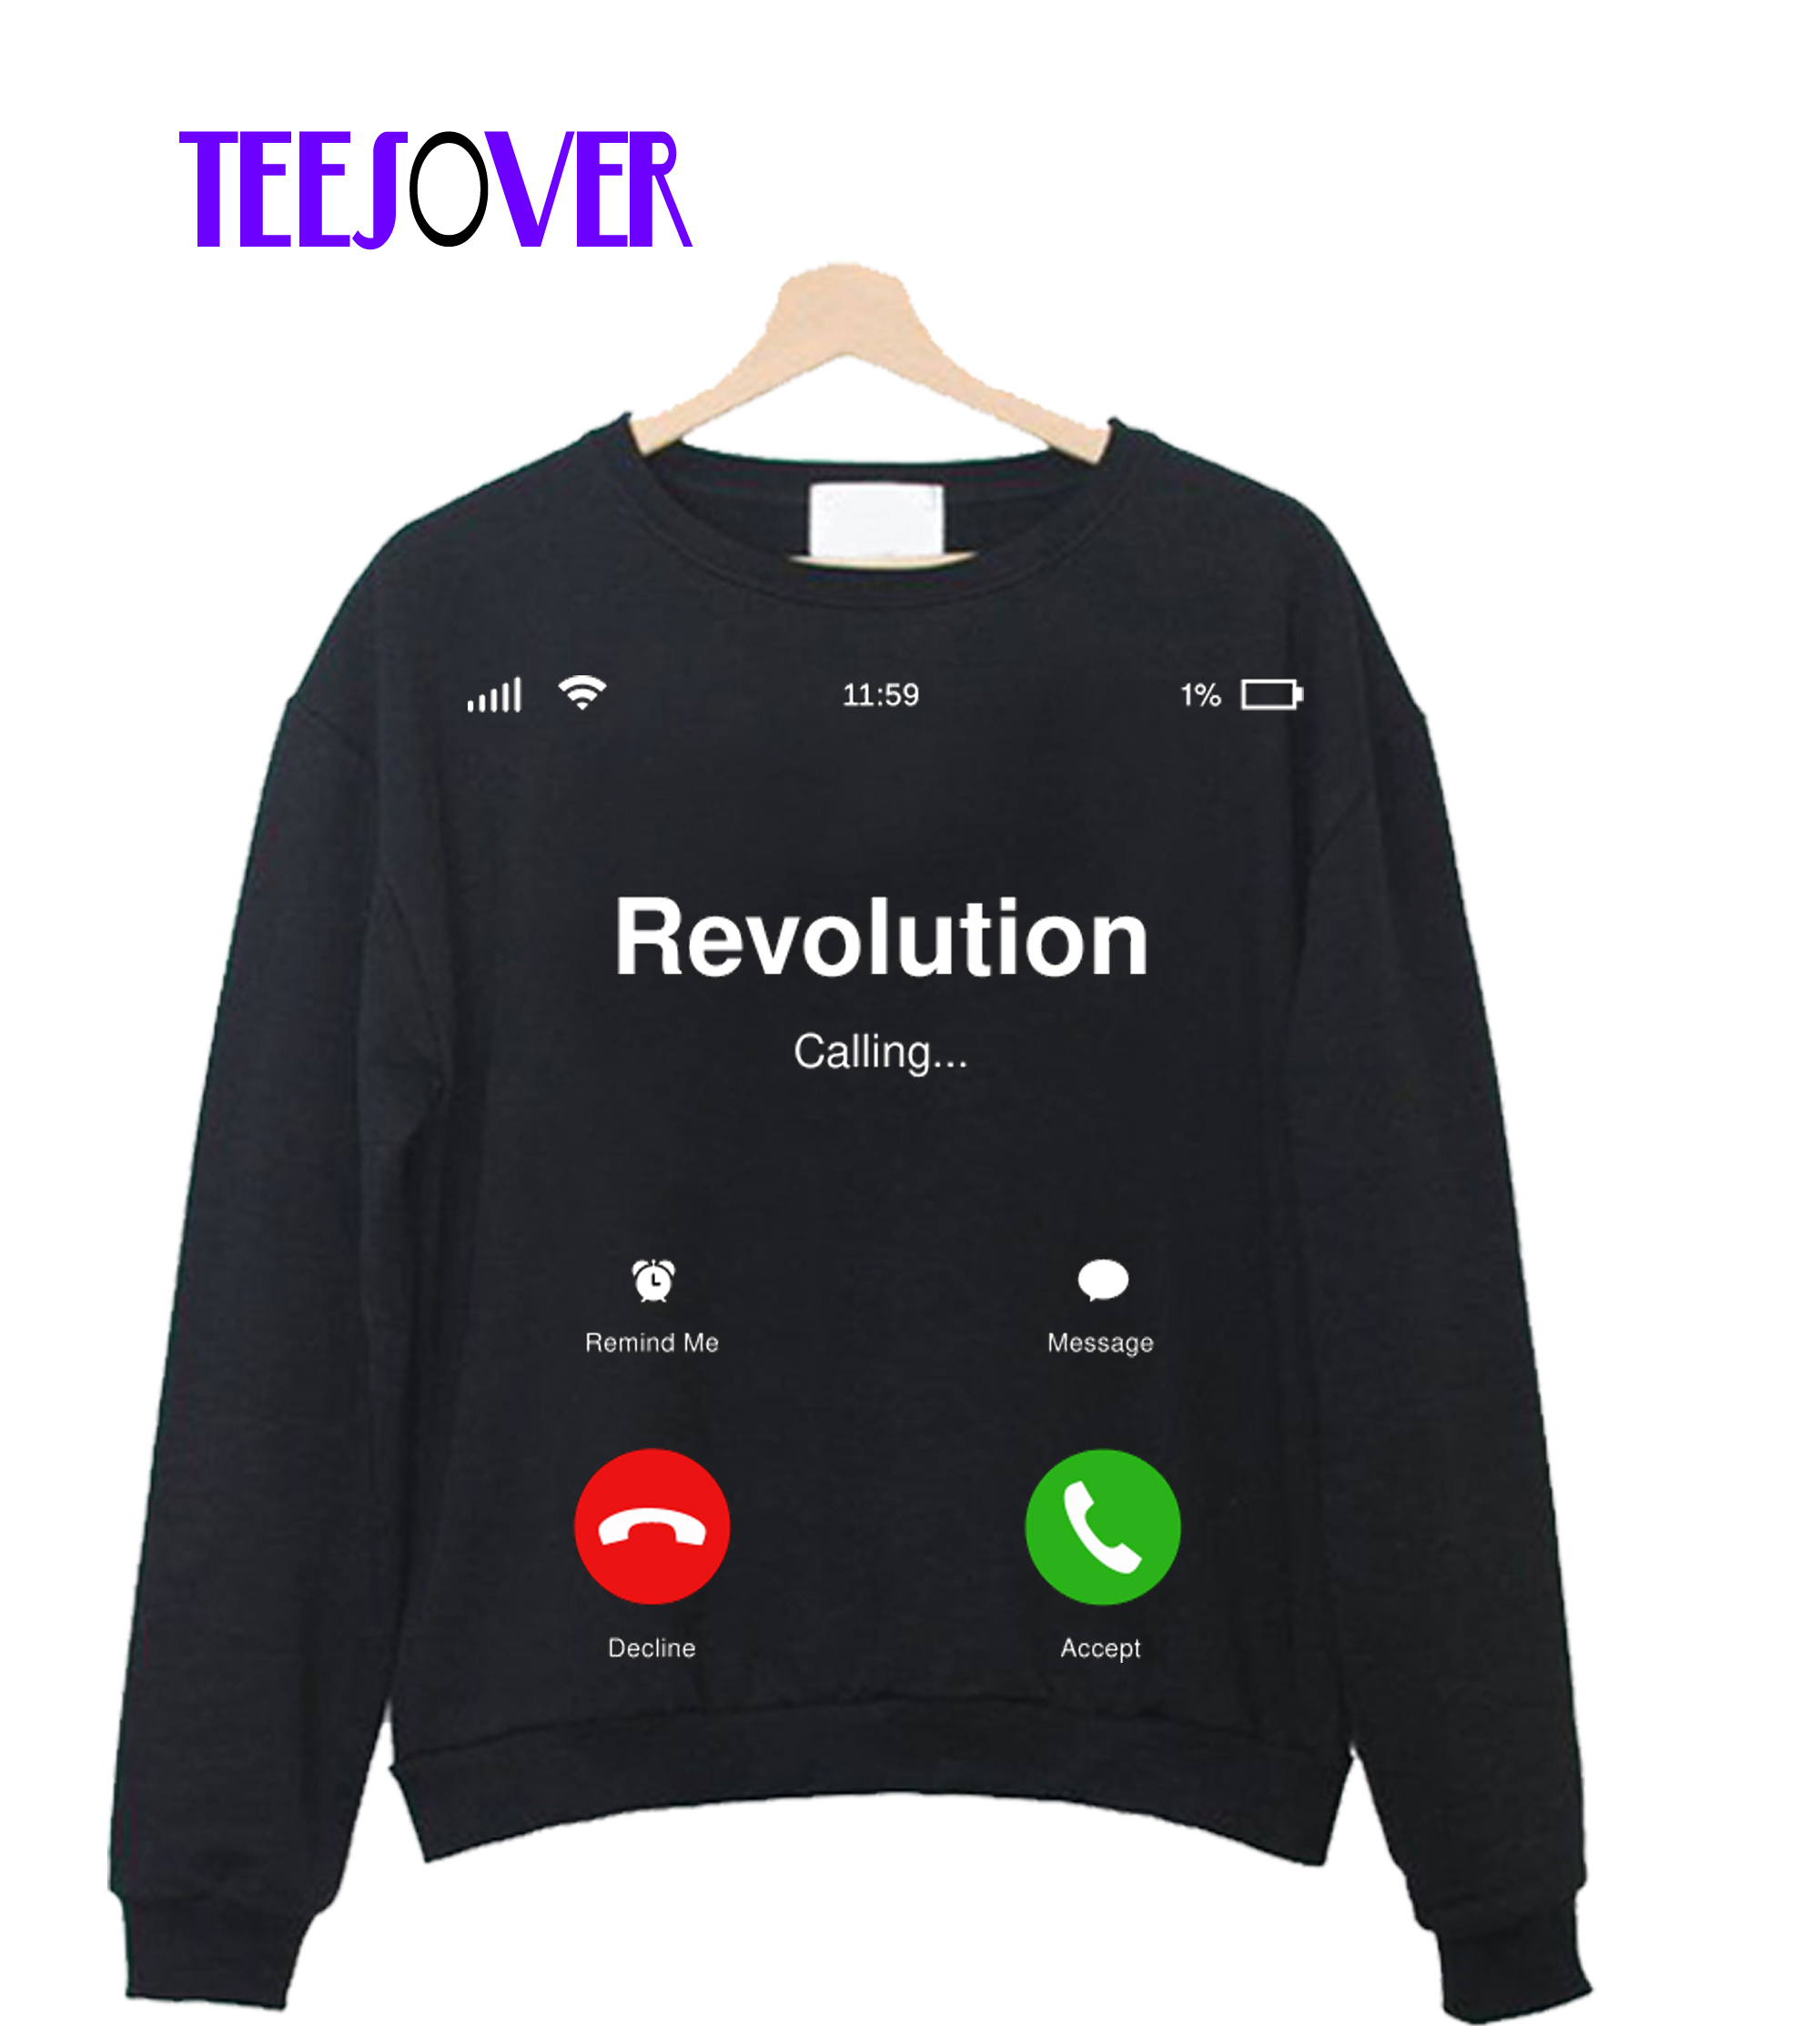 Revolution Calling - Social Activism - Call for Action Crewneck Sweatshirt